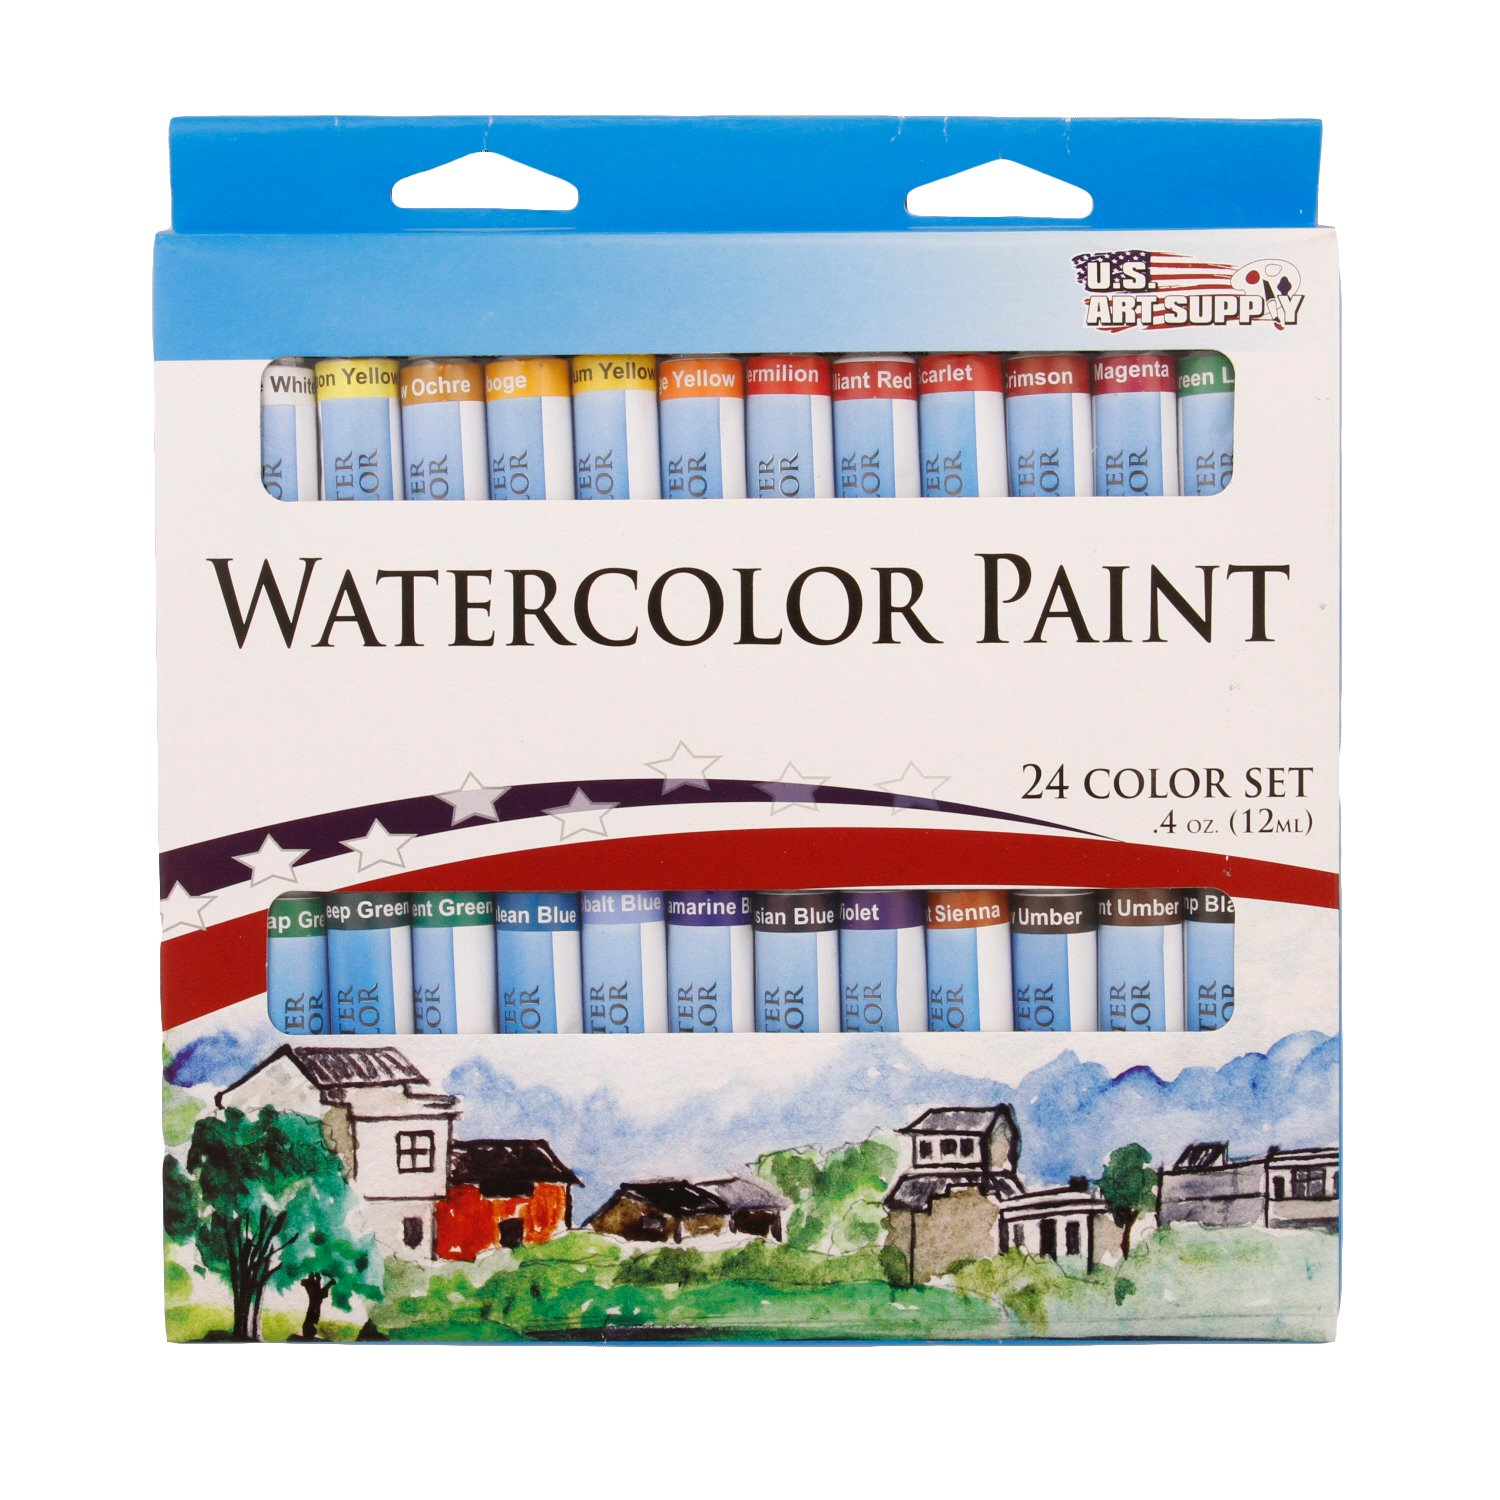 Watercolor artist magazine review - Amazon Com U S Art Supply 12ml Premium Vivid Watercolor Artist Aluminum Tube Paint Set 24 Colors